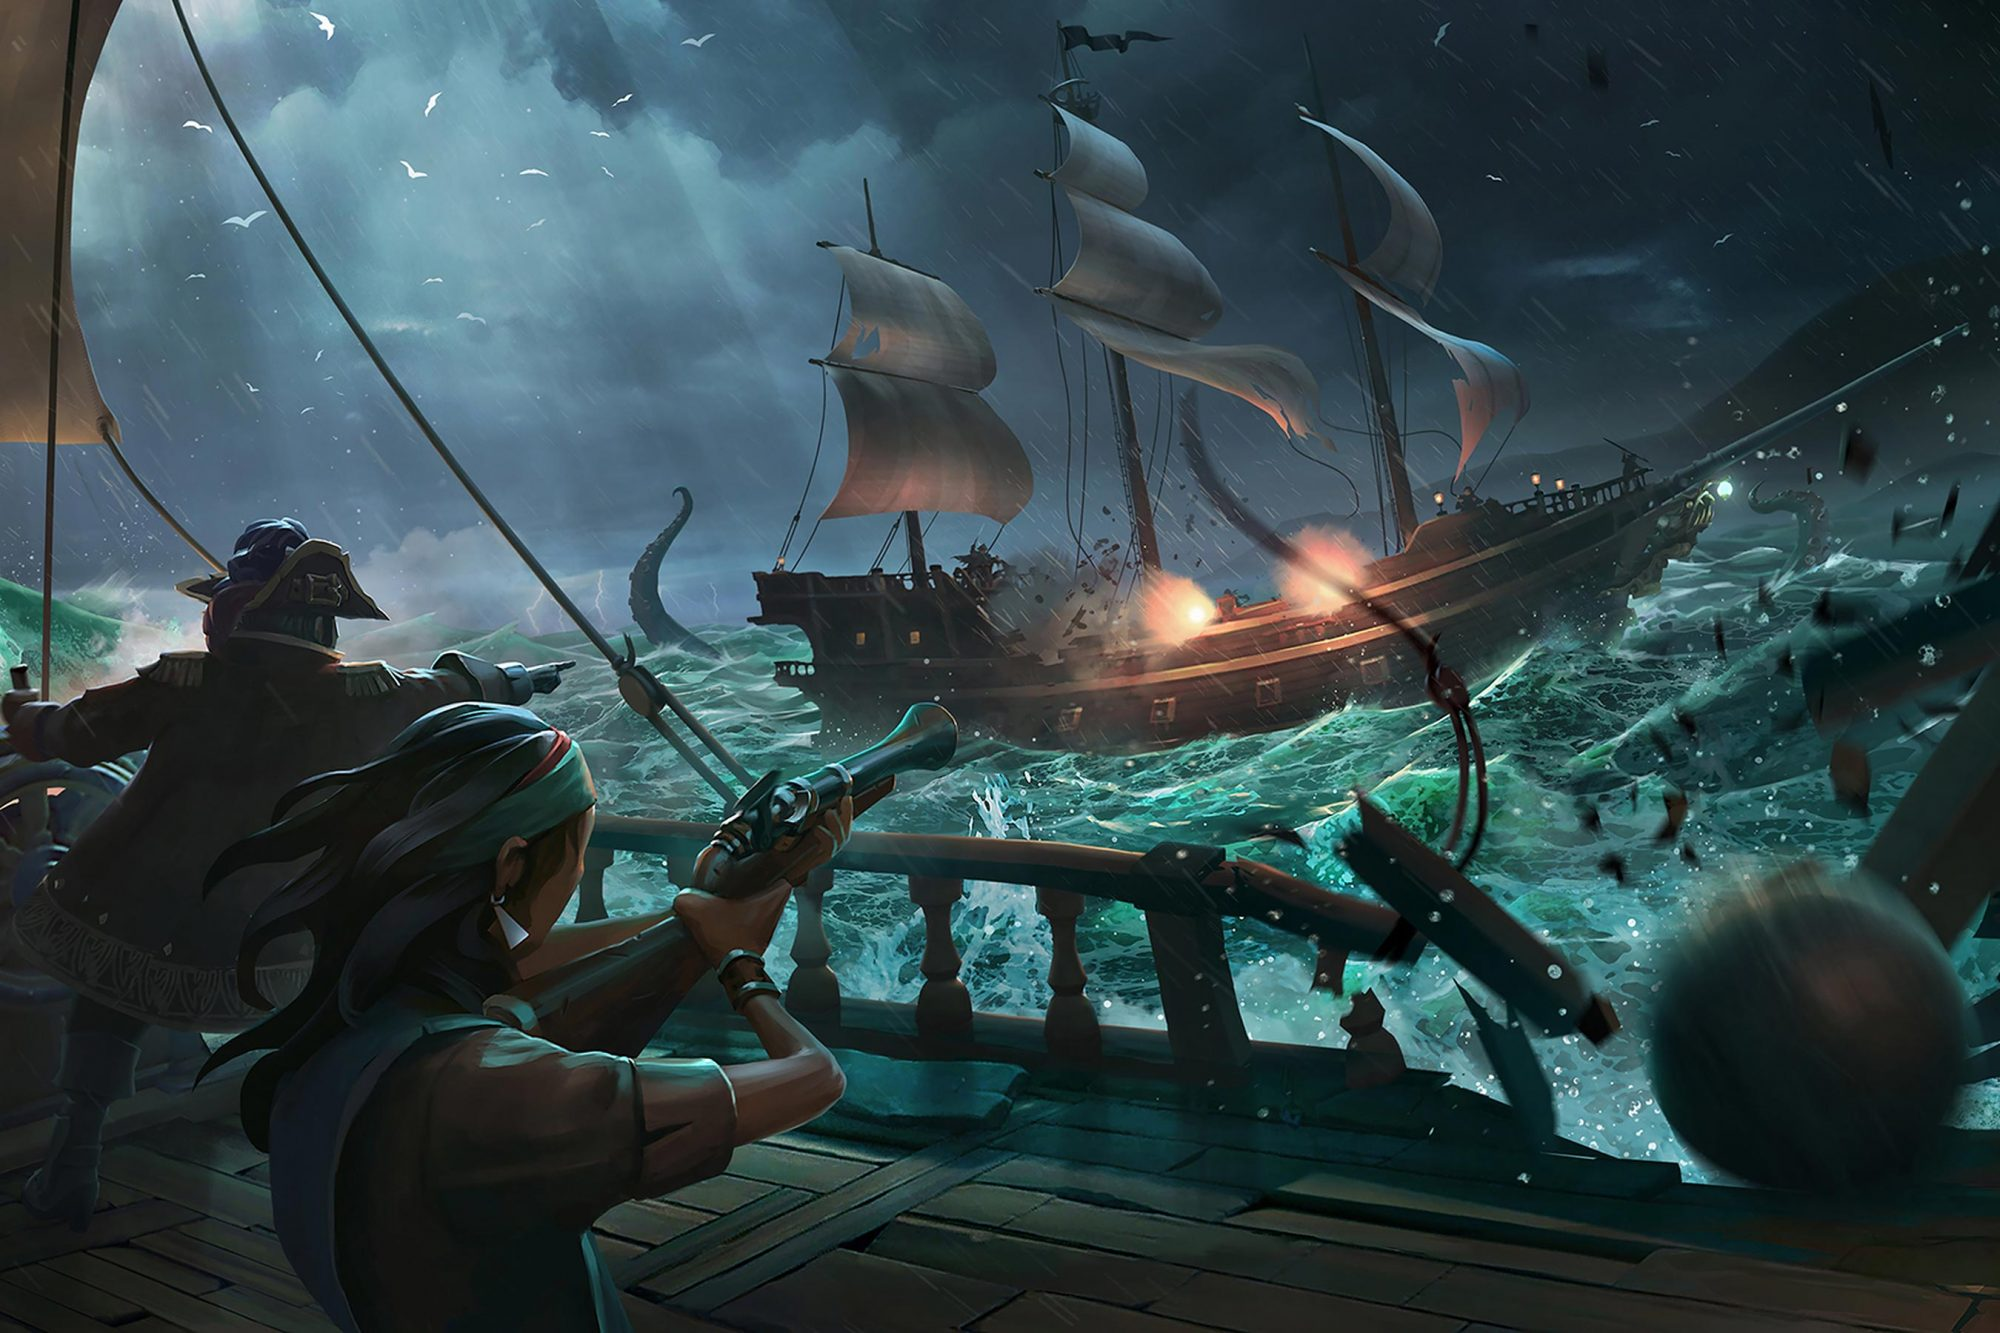 Sea of Thieves video game (2018) CR: Microsoft Studios